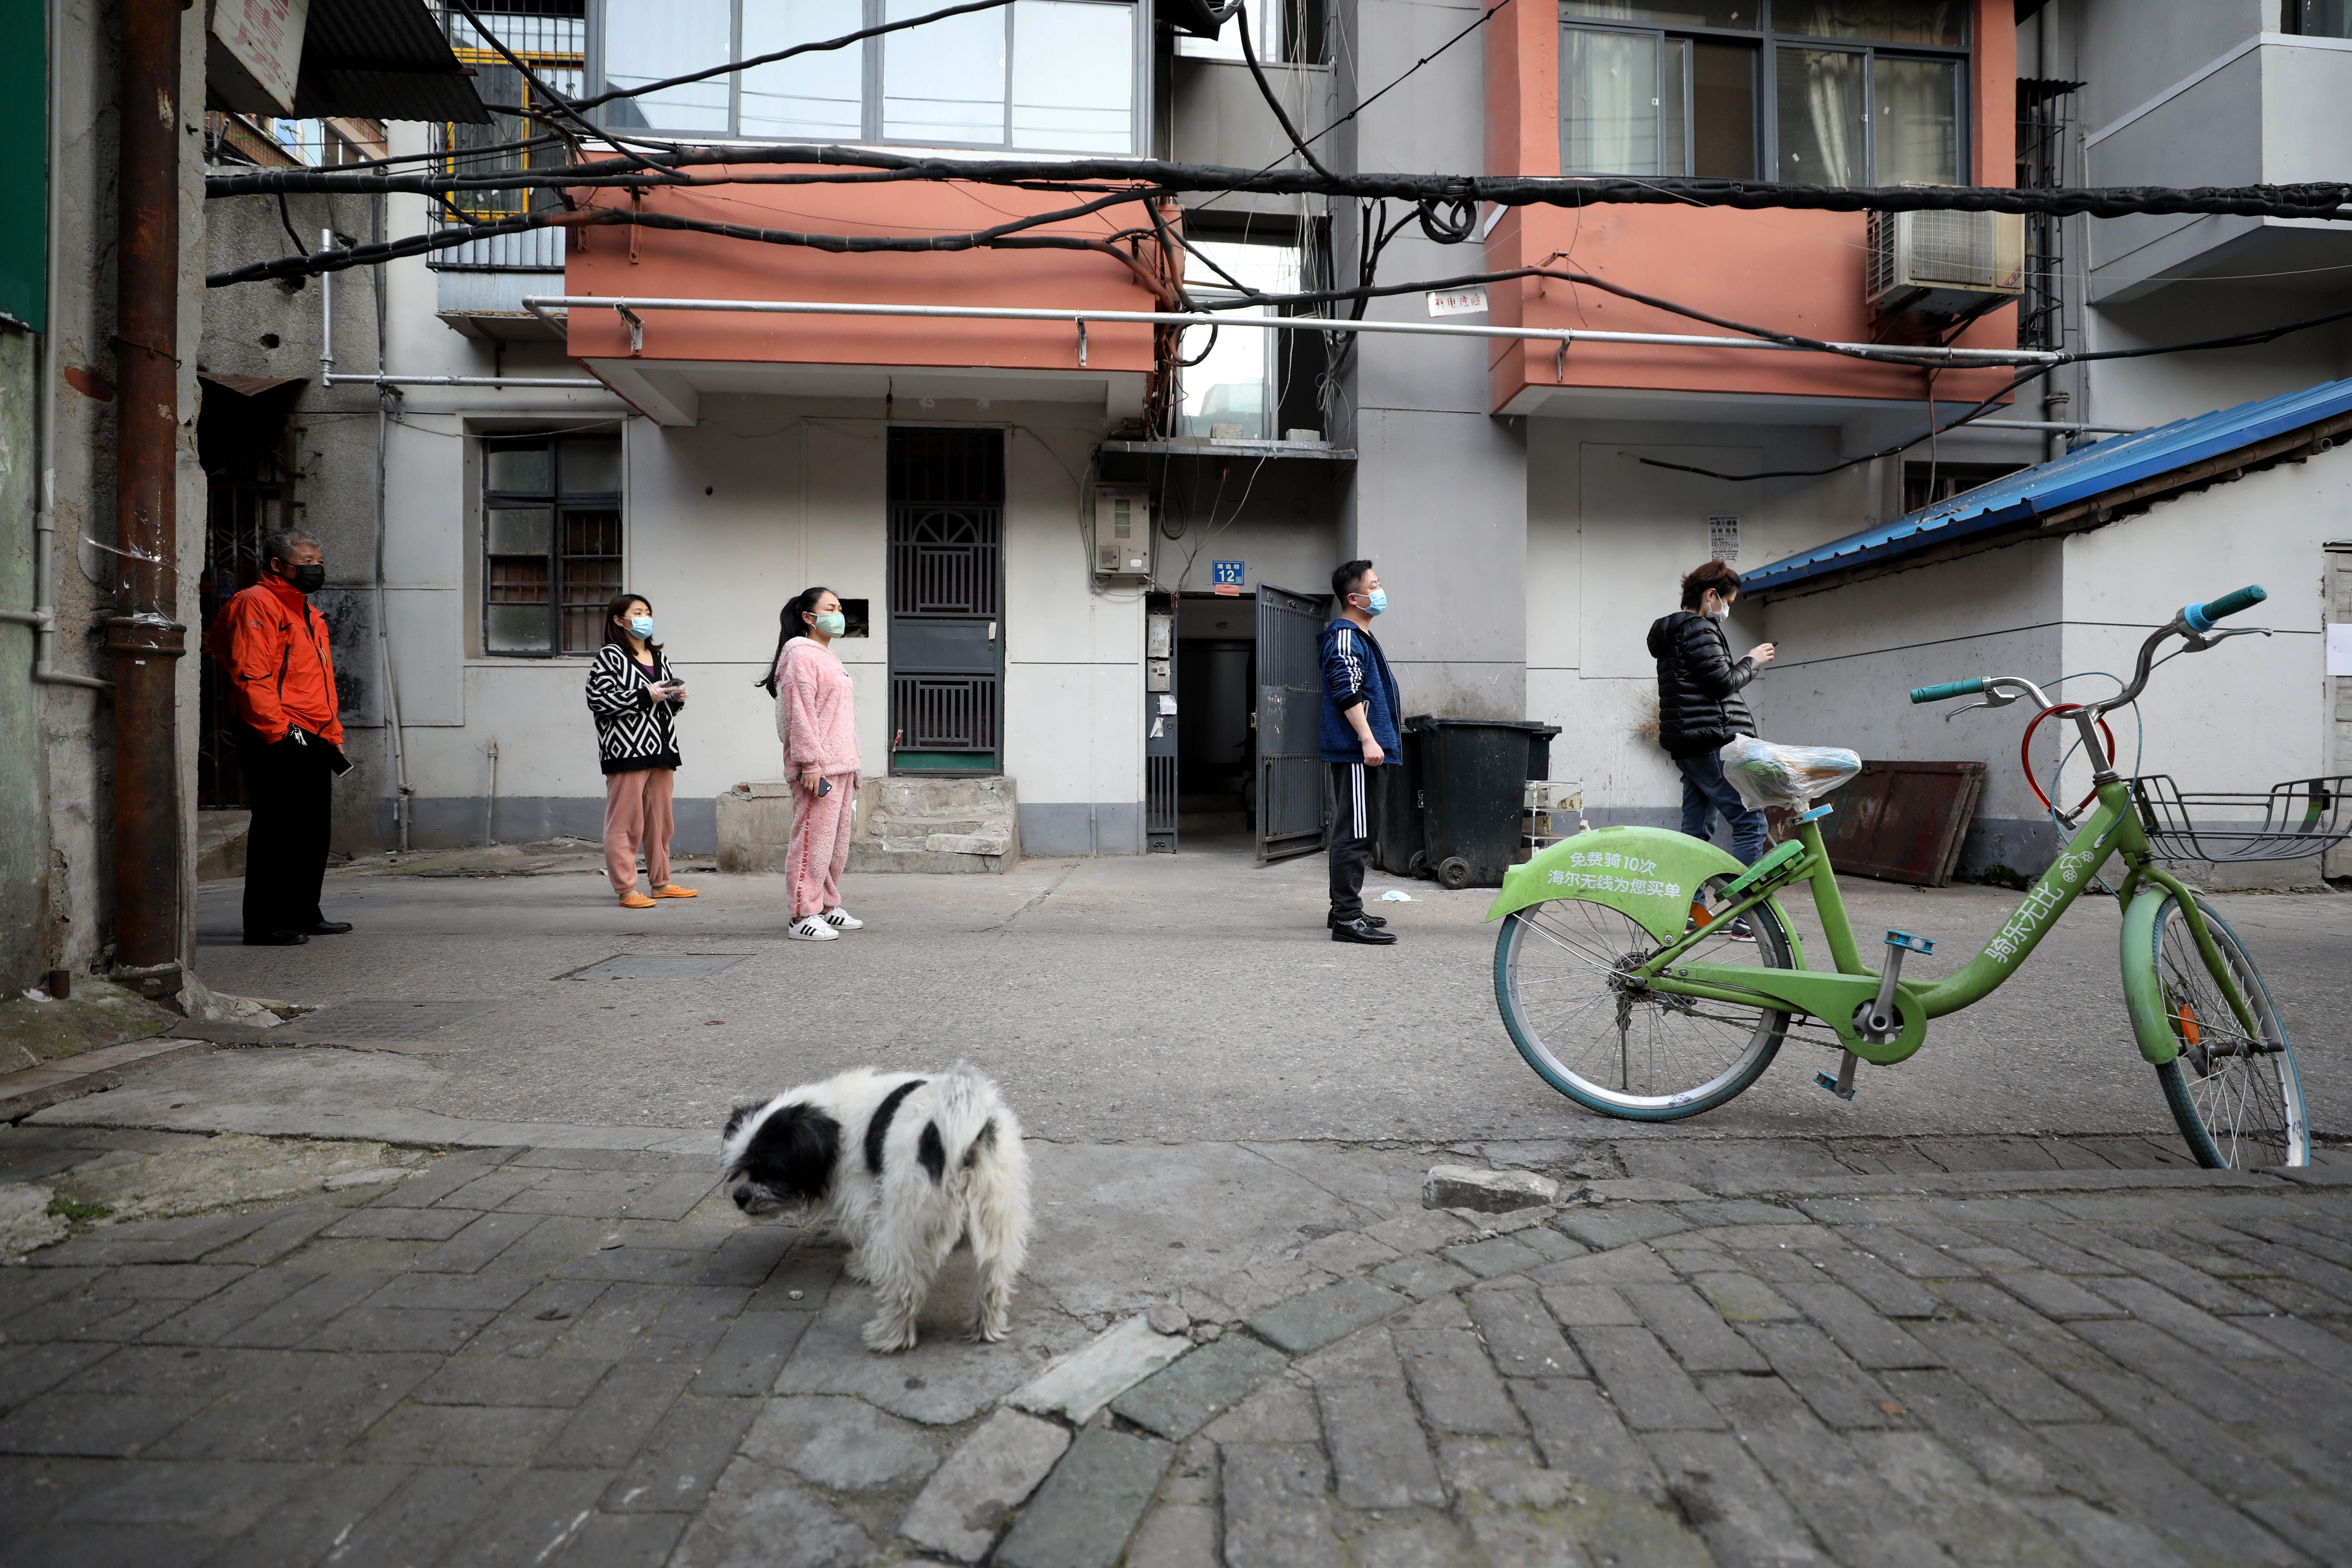 This photo taken on March 18, 2020 shows residents lining up to pick up food which was delivered to their quarantined compound in Wuhan, in China's central Hubei province. (Photo by STR/AFP via Getty Images)